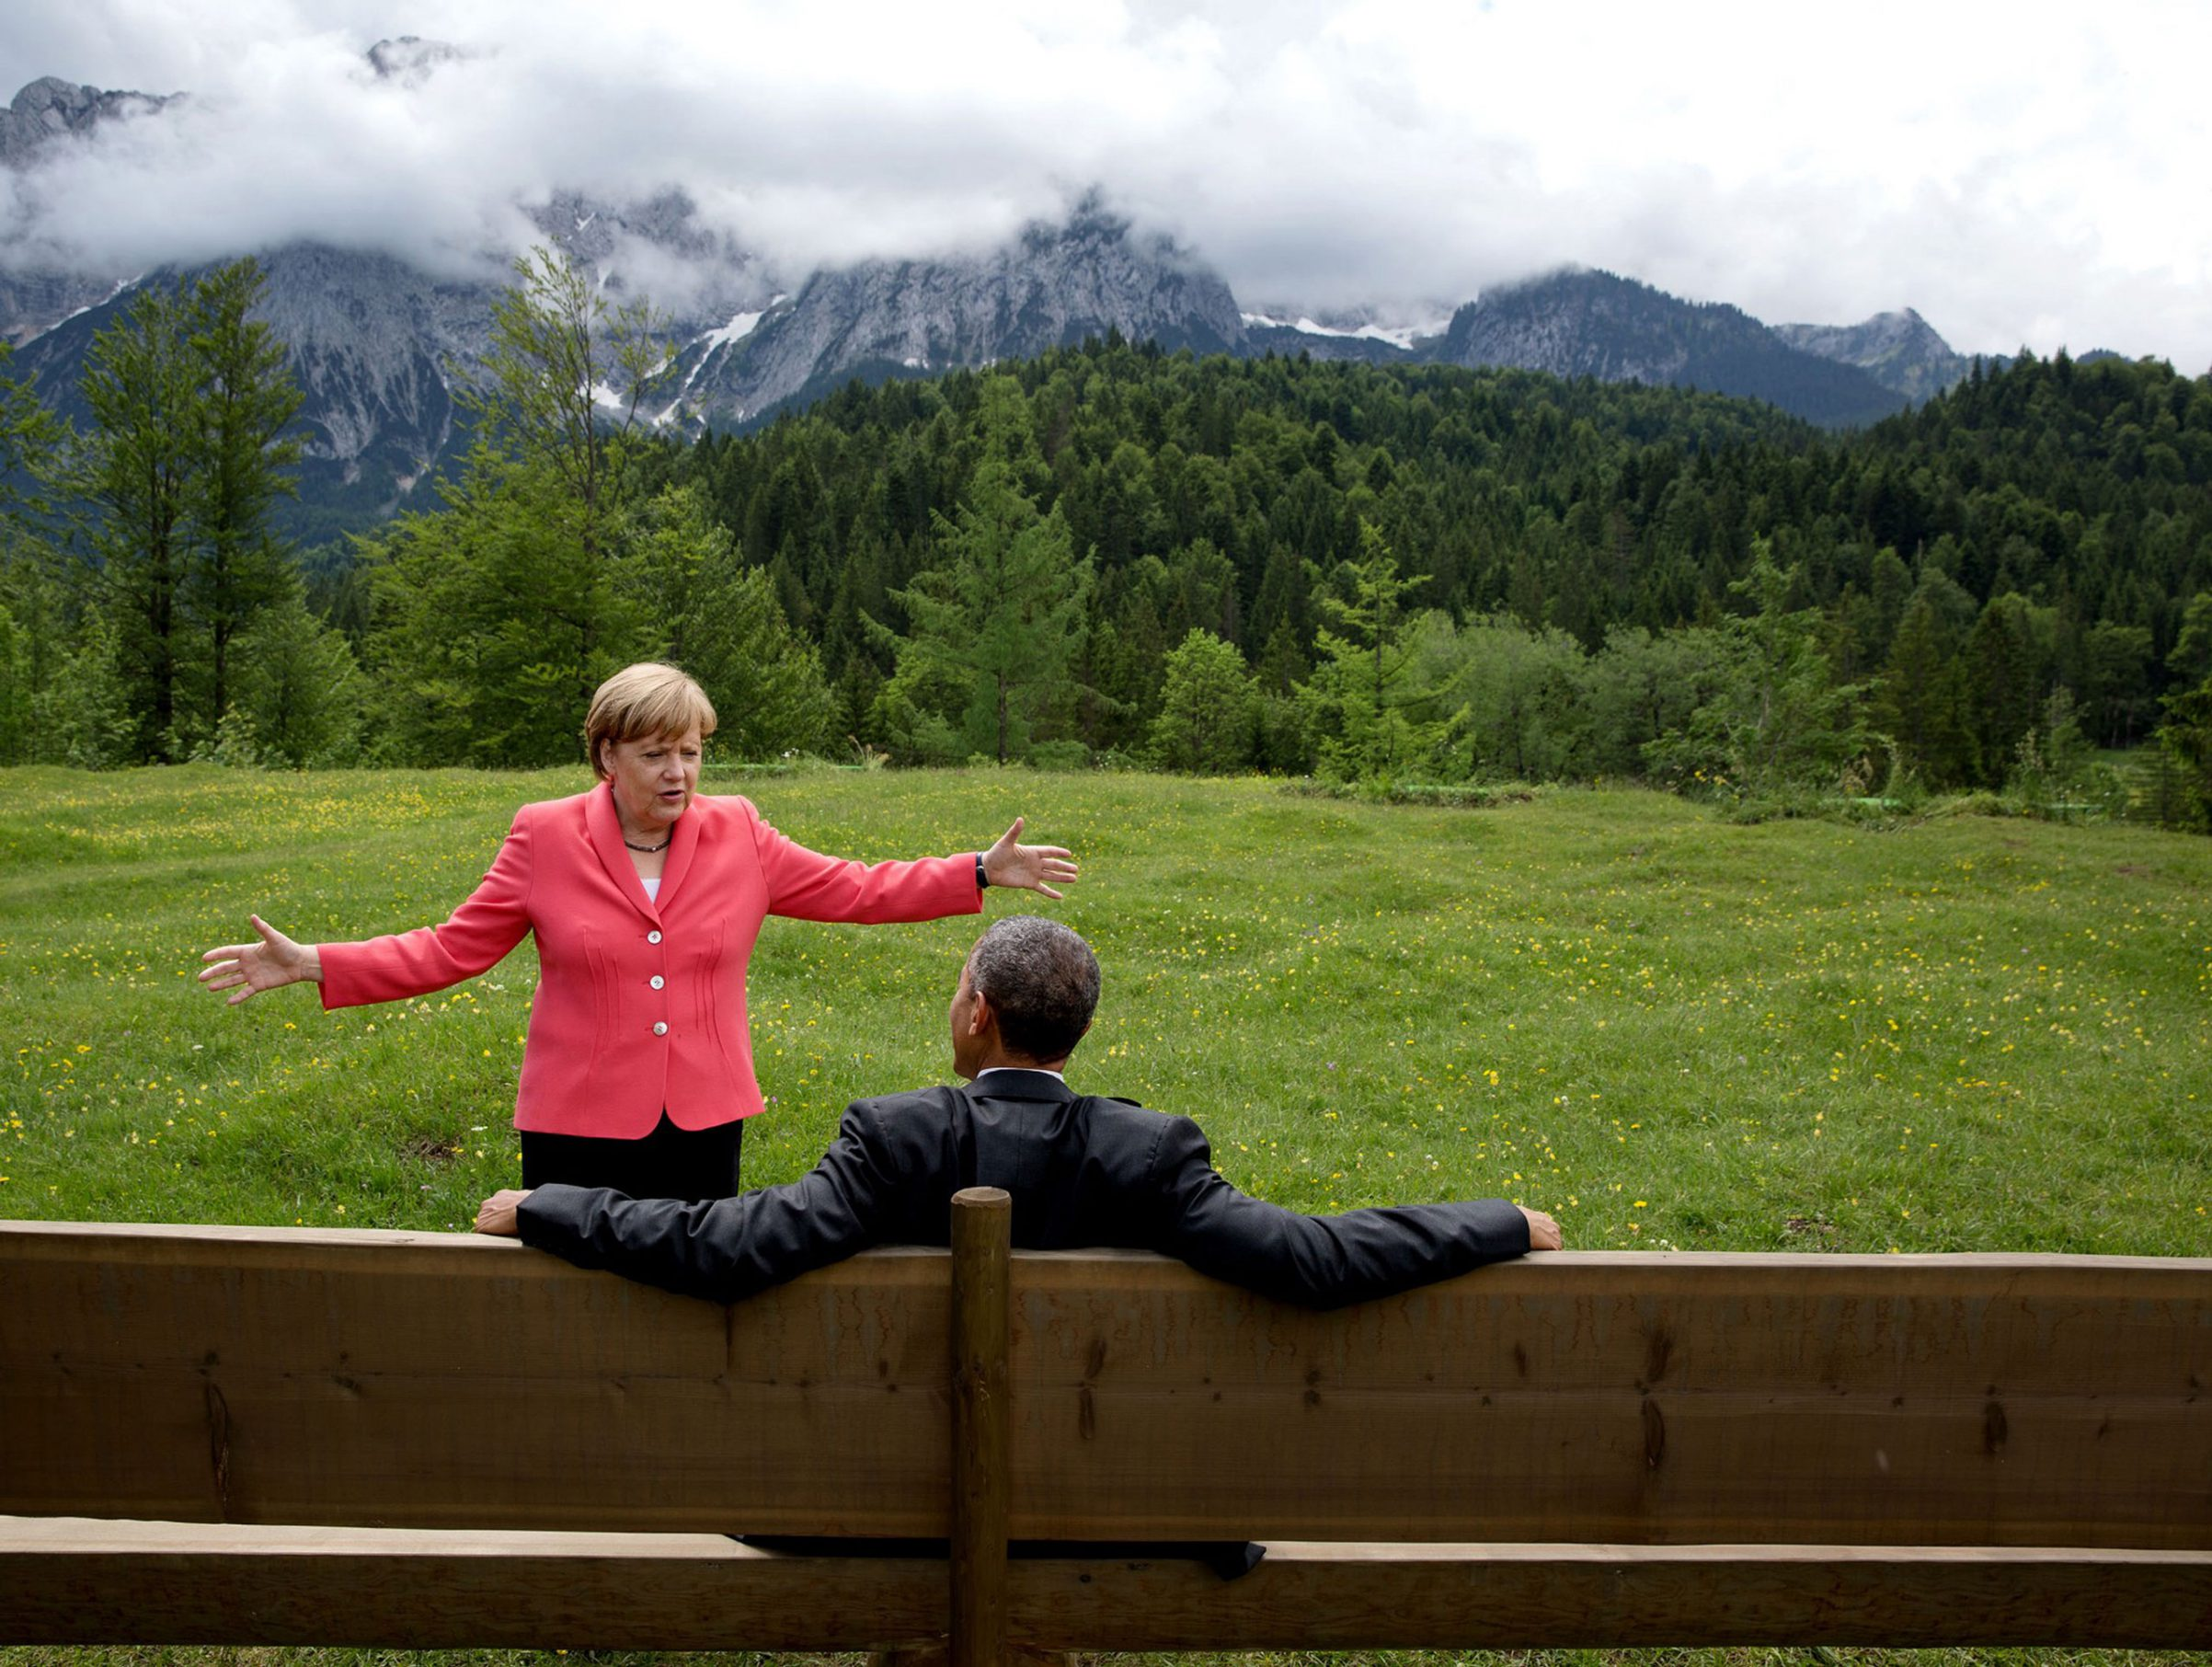 German Chancellor Angela Merkel talks with President Barack Obama at the G7 Summit in Krün, Germany, on June 8, 2015.